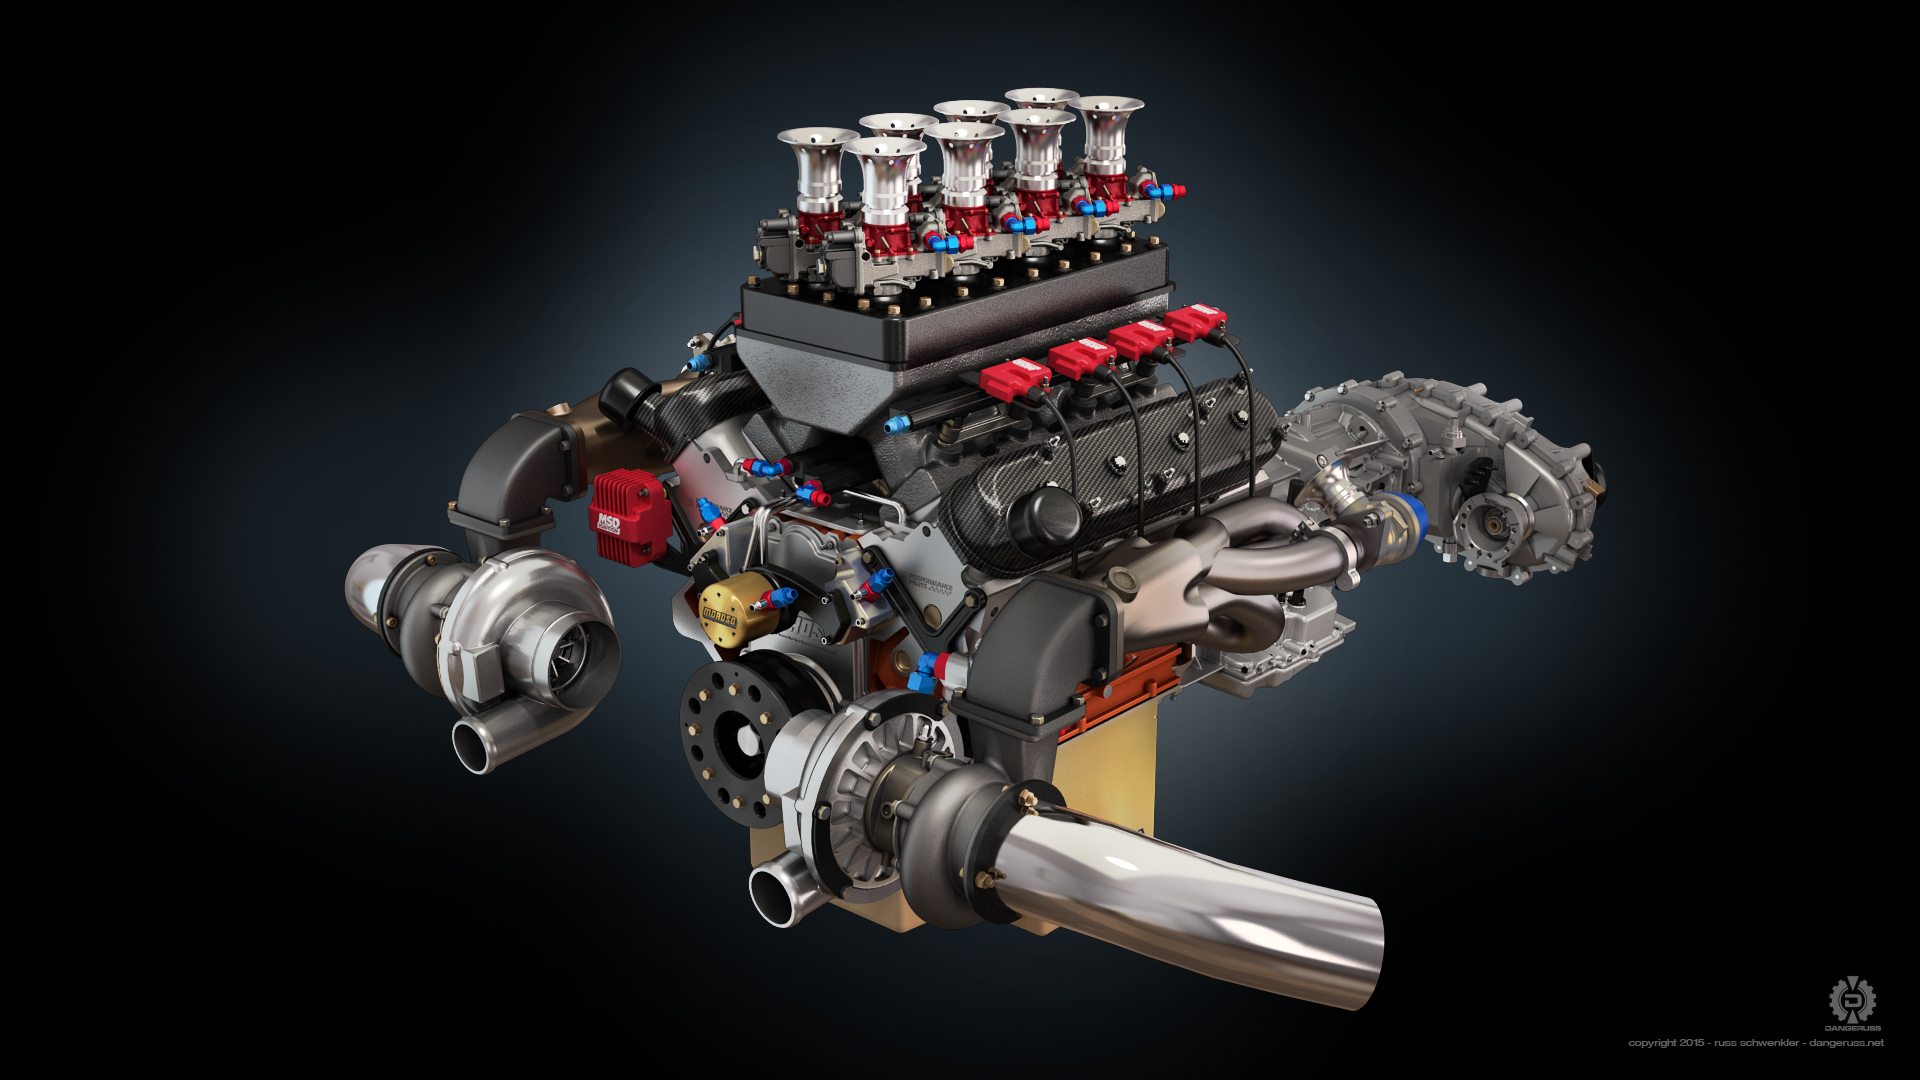 Twin Turbo Fuel Injected Chevrolet LS1 by dangeruss on DeviantArt